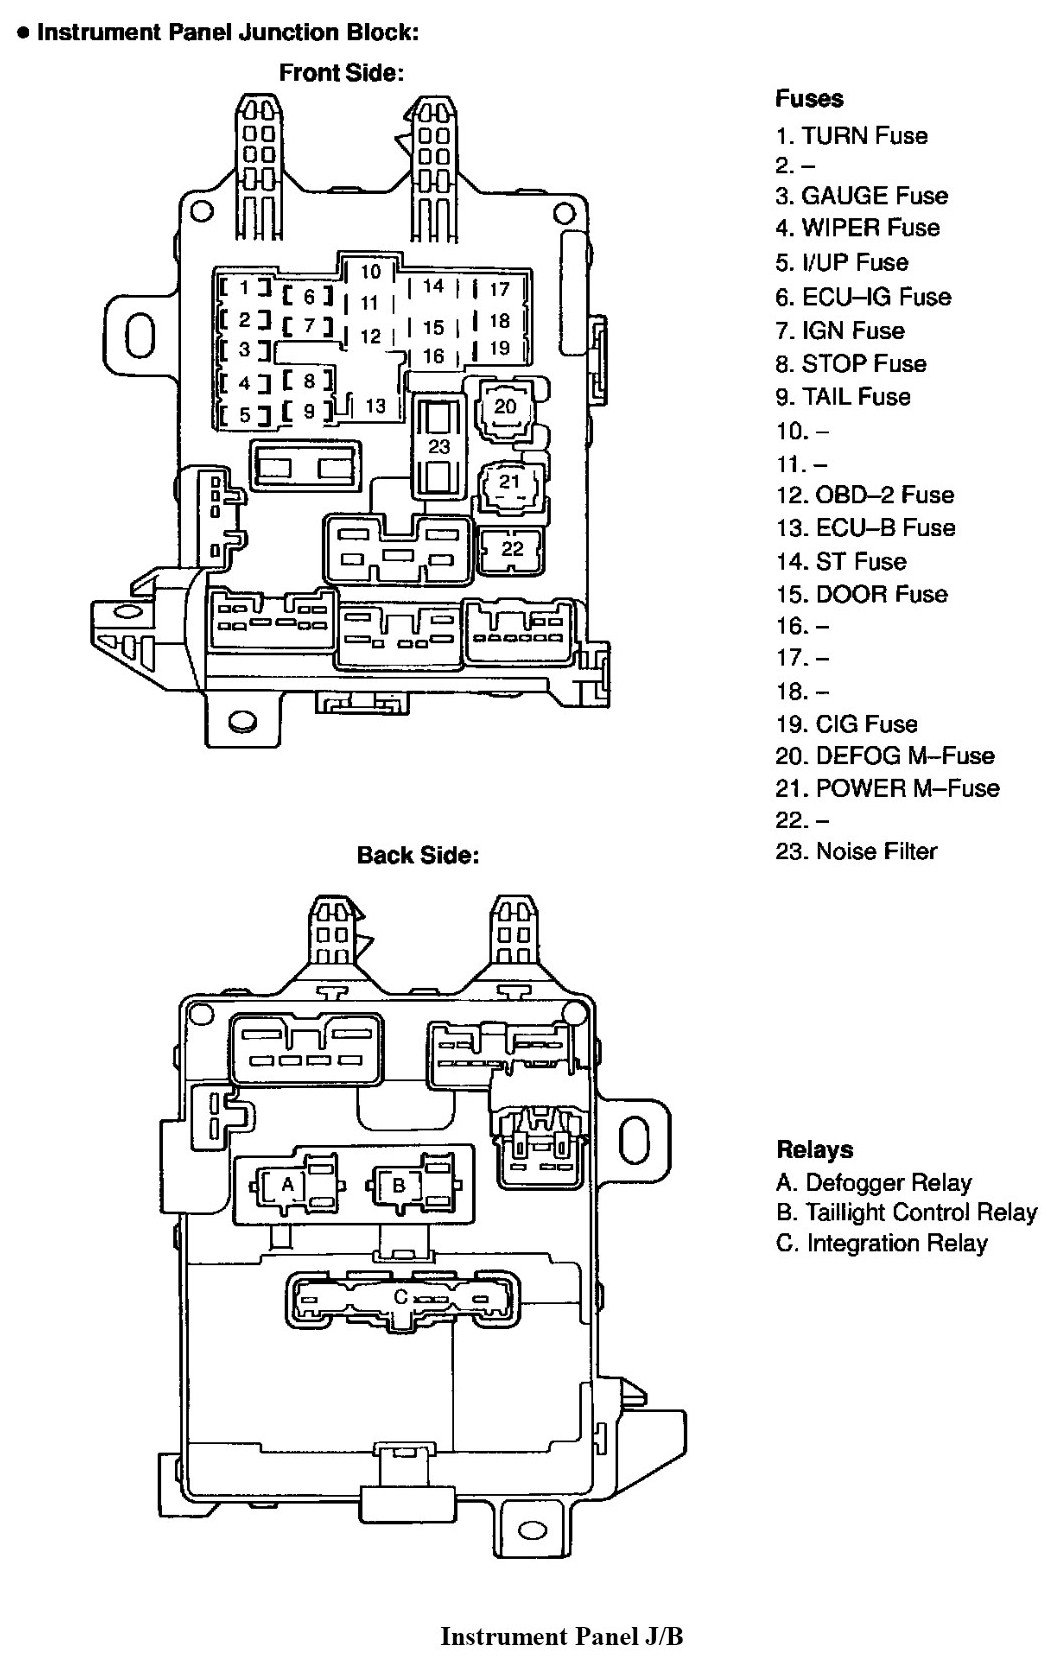 Toyota Wish Fuse Box Diagram Archive Of Automotive Wiring 2011 Ml350 Corolla Schematics Rh Thyl Co Uk 2003